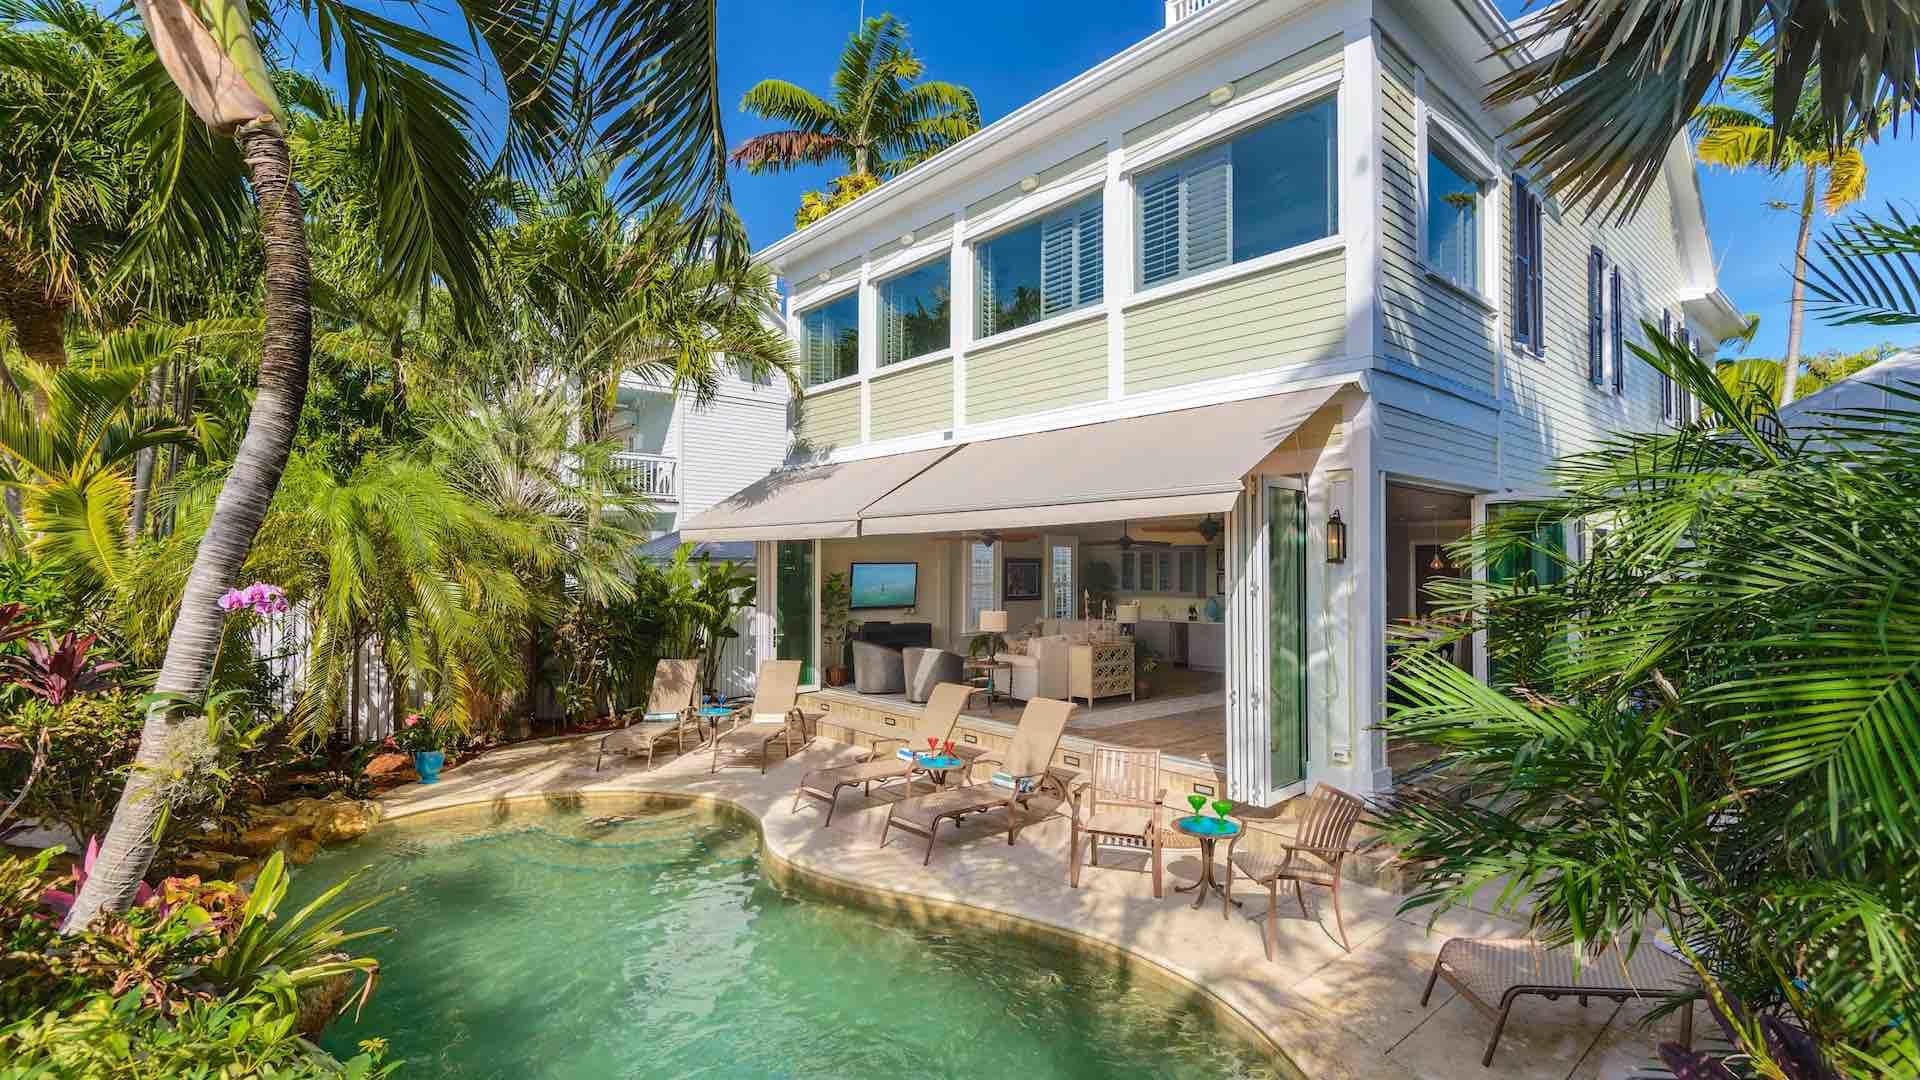 The living room is just a few steps from a lagoon-style pool with waterfalls...